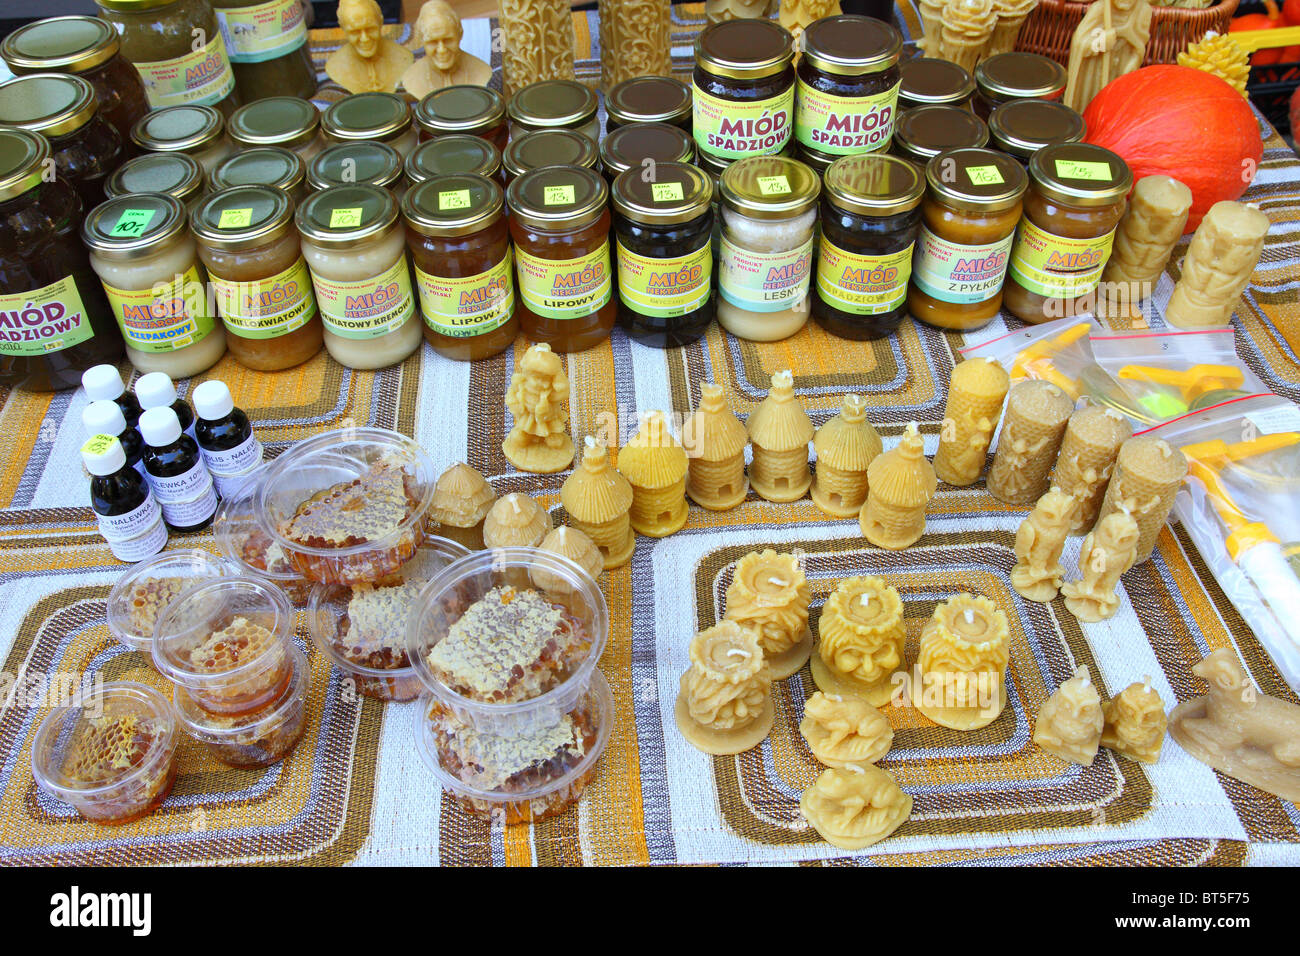 Jars of organic honey and home made beeswax products Wroclaw Poland - Stock Image